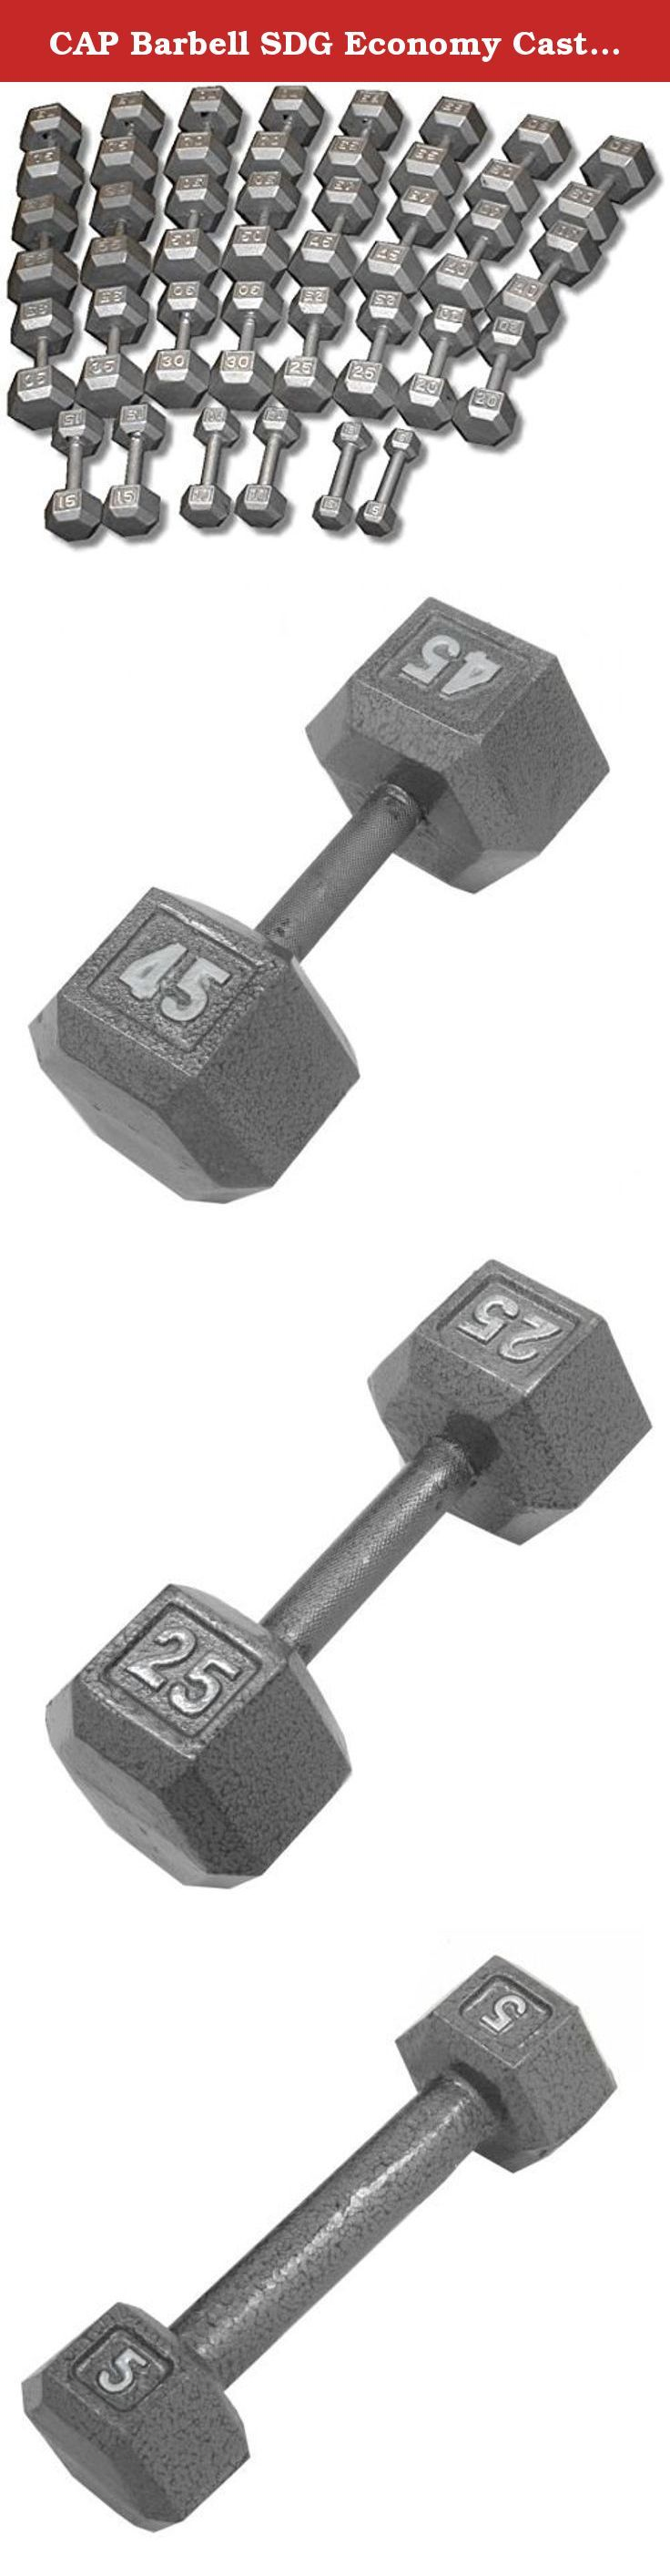 CAP Barbell SDG Economy Cast Iron Hex Dumbbell Set - 5 to 75 lbs (15 pairs) - Home Gym Weight Set. Economy Cast Iron Hex Dumbbell Sets from CAP Barbell - Hex dumbbell sets are often the perfect dumbbell choice for home gym and garage gym use. They are economical and space efficient and for a lot of people that is the most important criteria when purchasing dumbbells for home use. Hexagonal dumbbell heads are non-rolling when set down on the floor or racks. Cast iron heads increase in size…